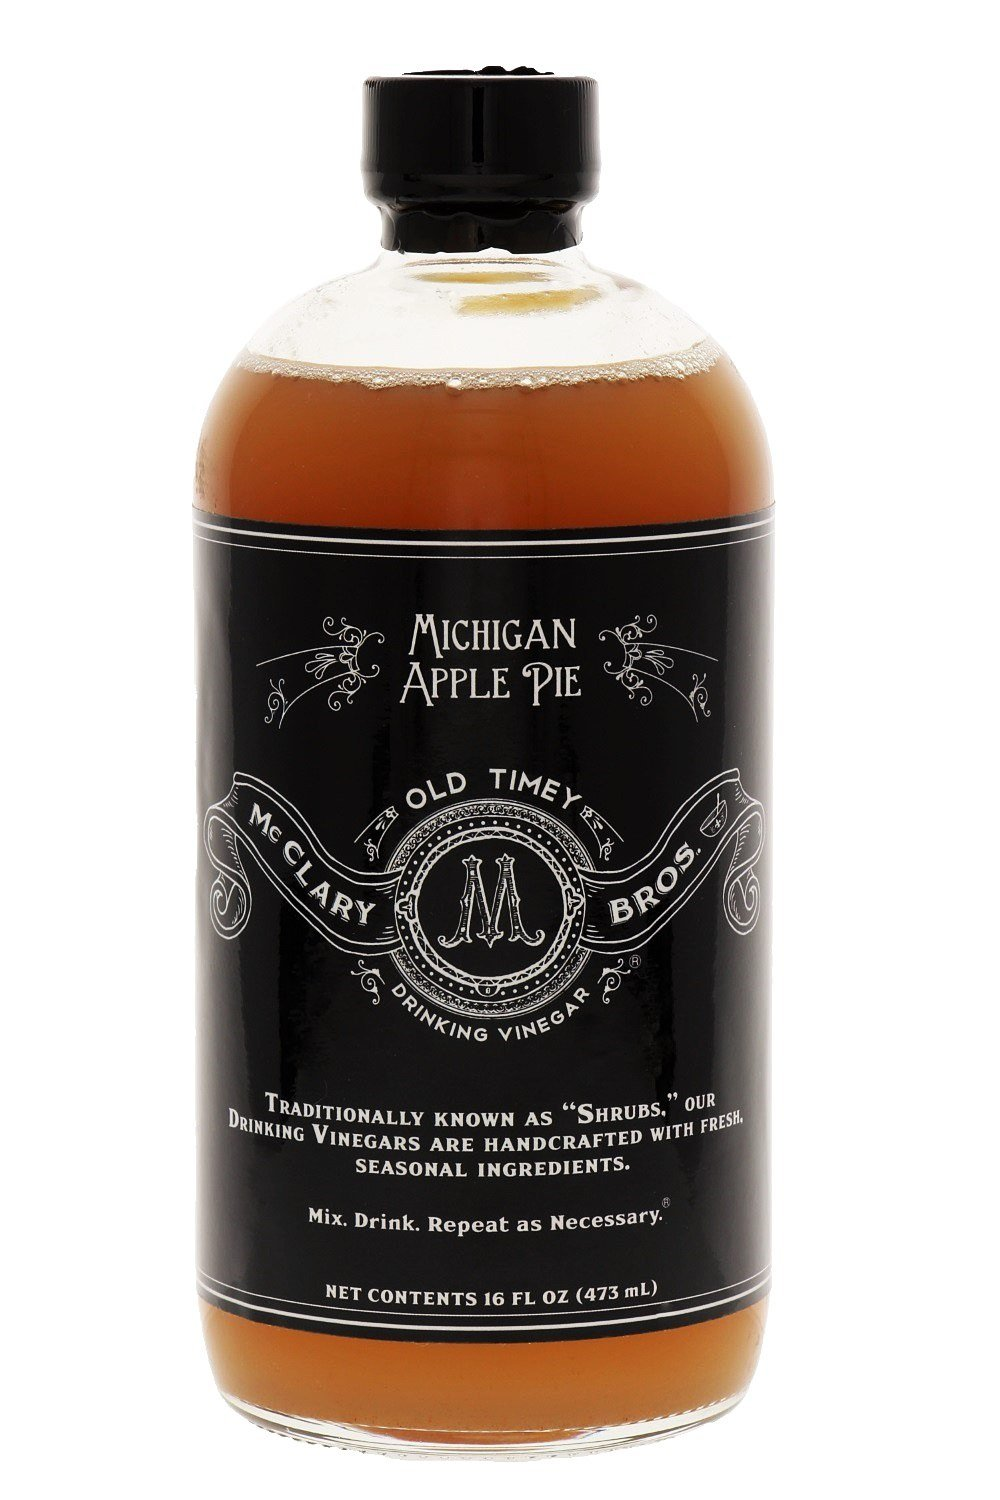 McClary Bros- Michigan Apple Pie- Handcrafted Drinking Vinegars- For Cooking, Craft Sodas and Shrub Cocktails